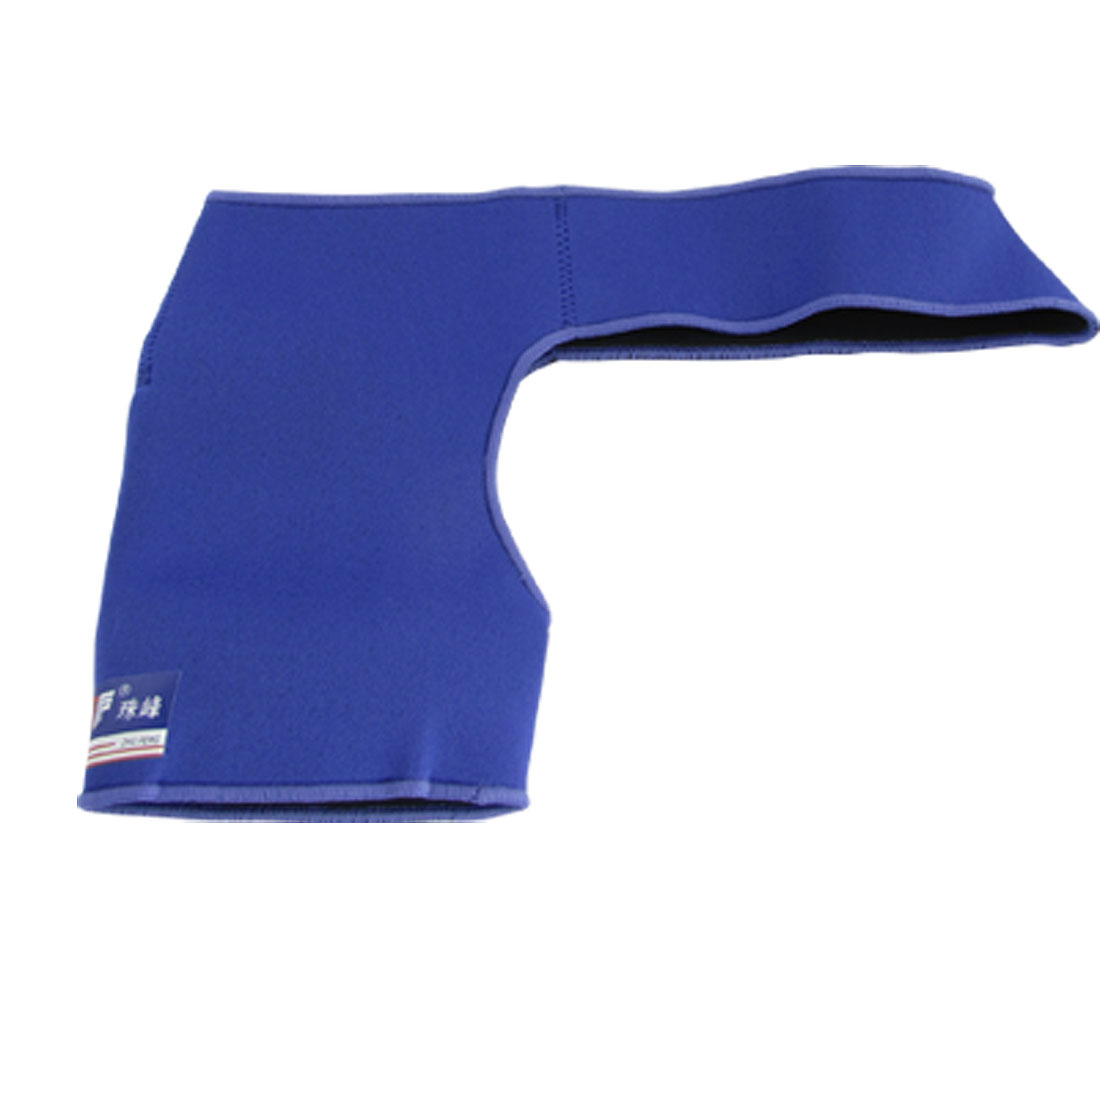 Blue Elastic Neoprene Shoulder Brace Support Sports Protector